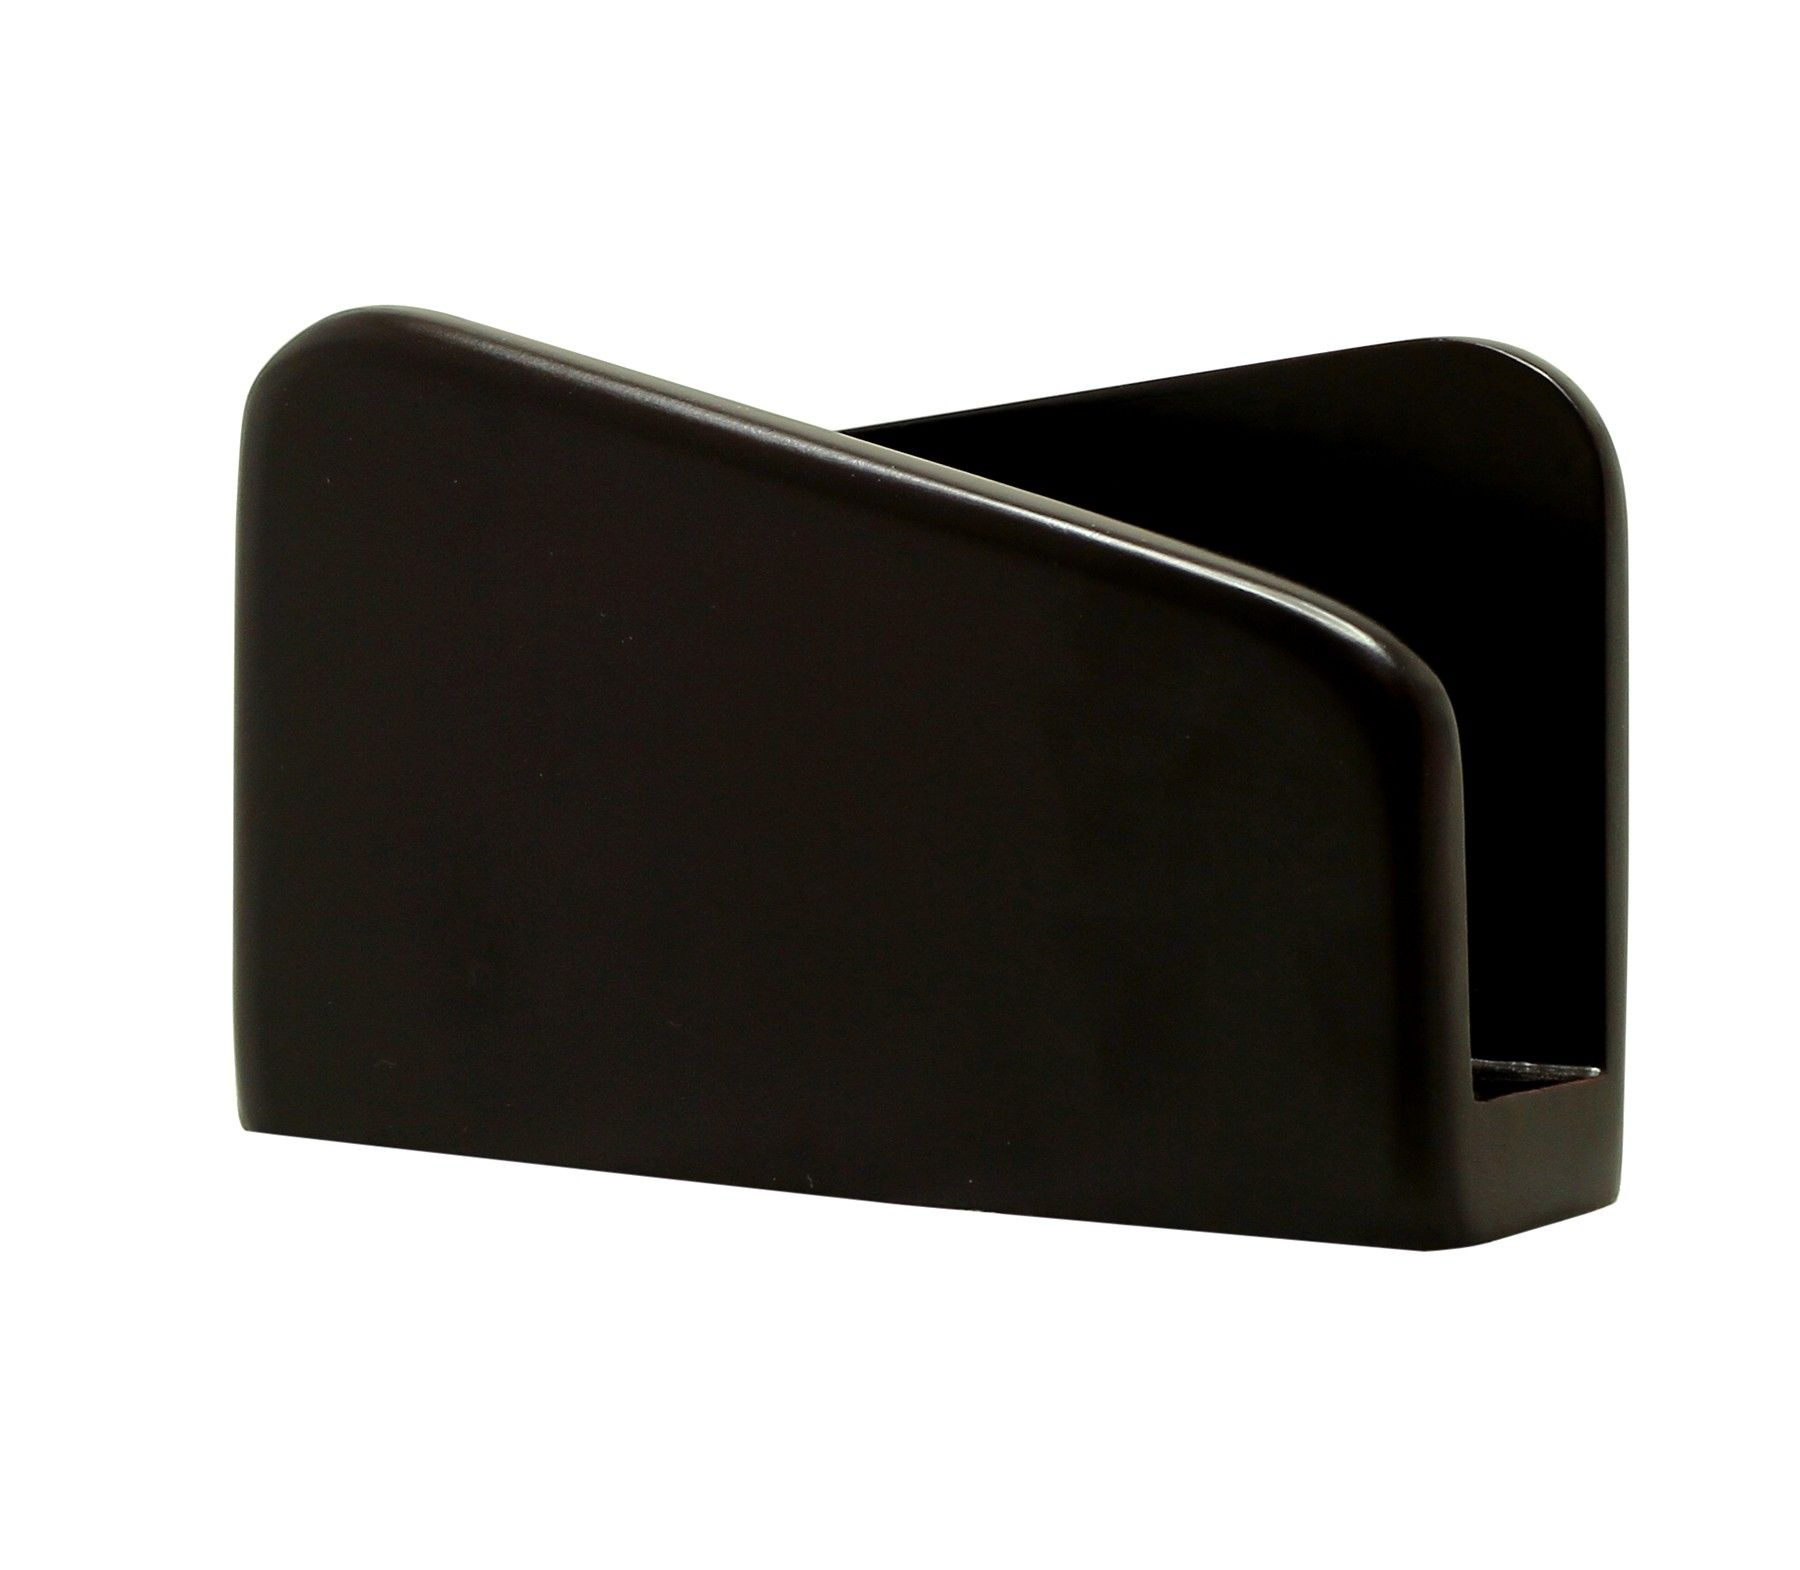 Contemporary Elegance Handmade 5 4 Black Wood Tissue Napkin Holder In Chic Style